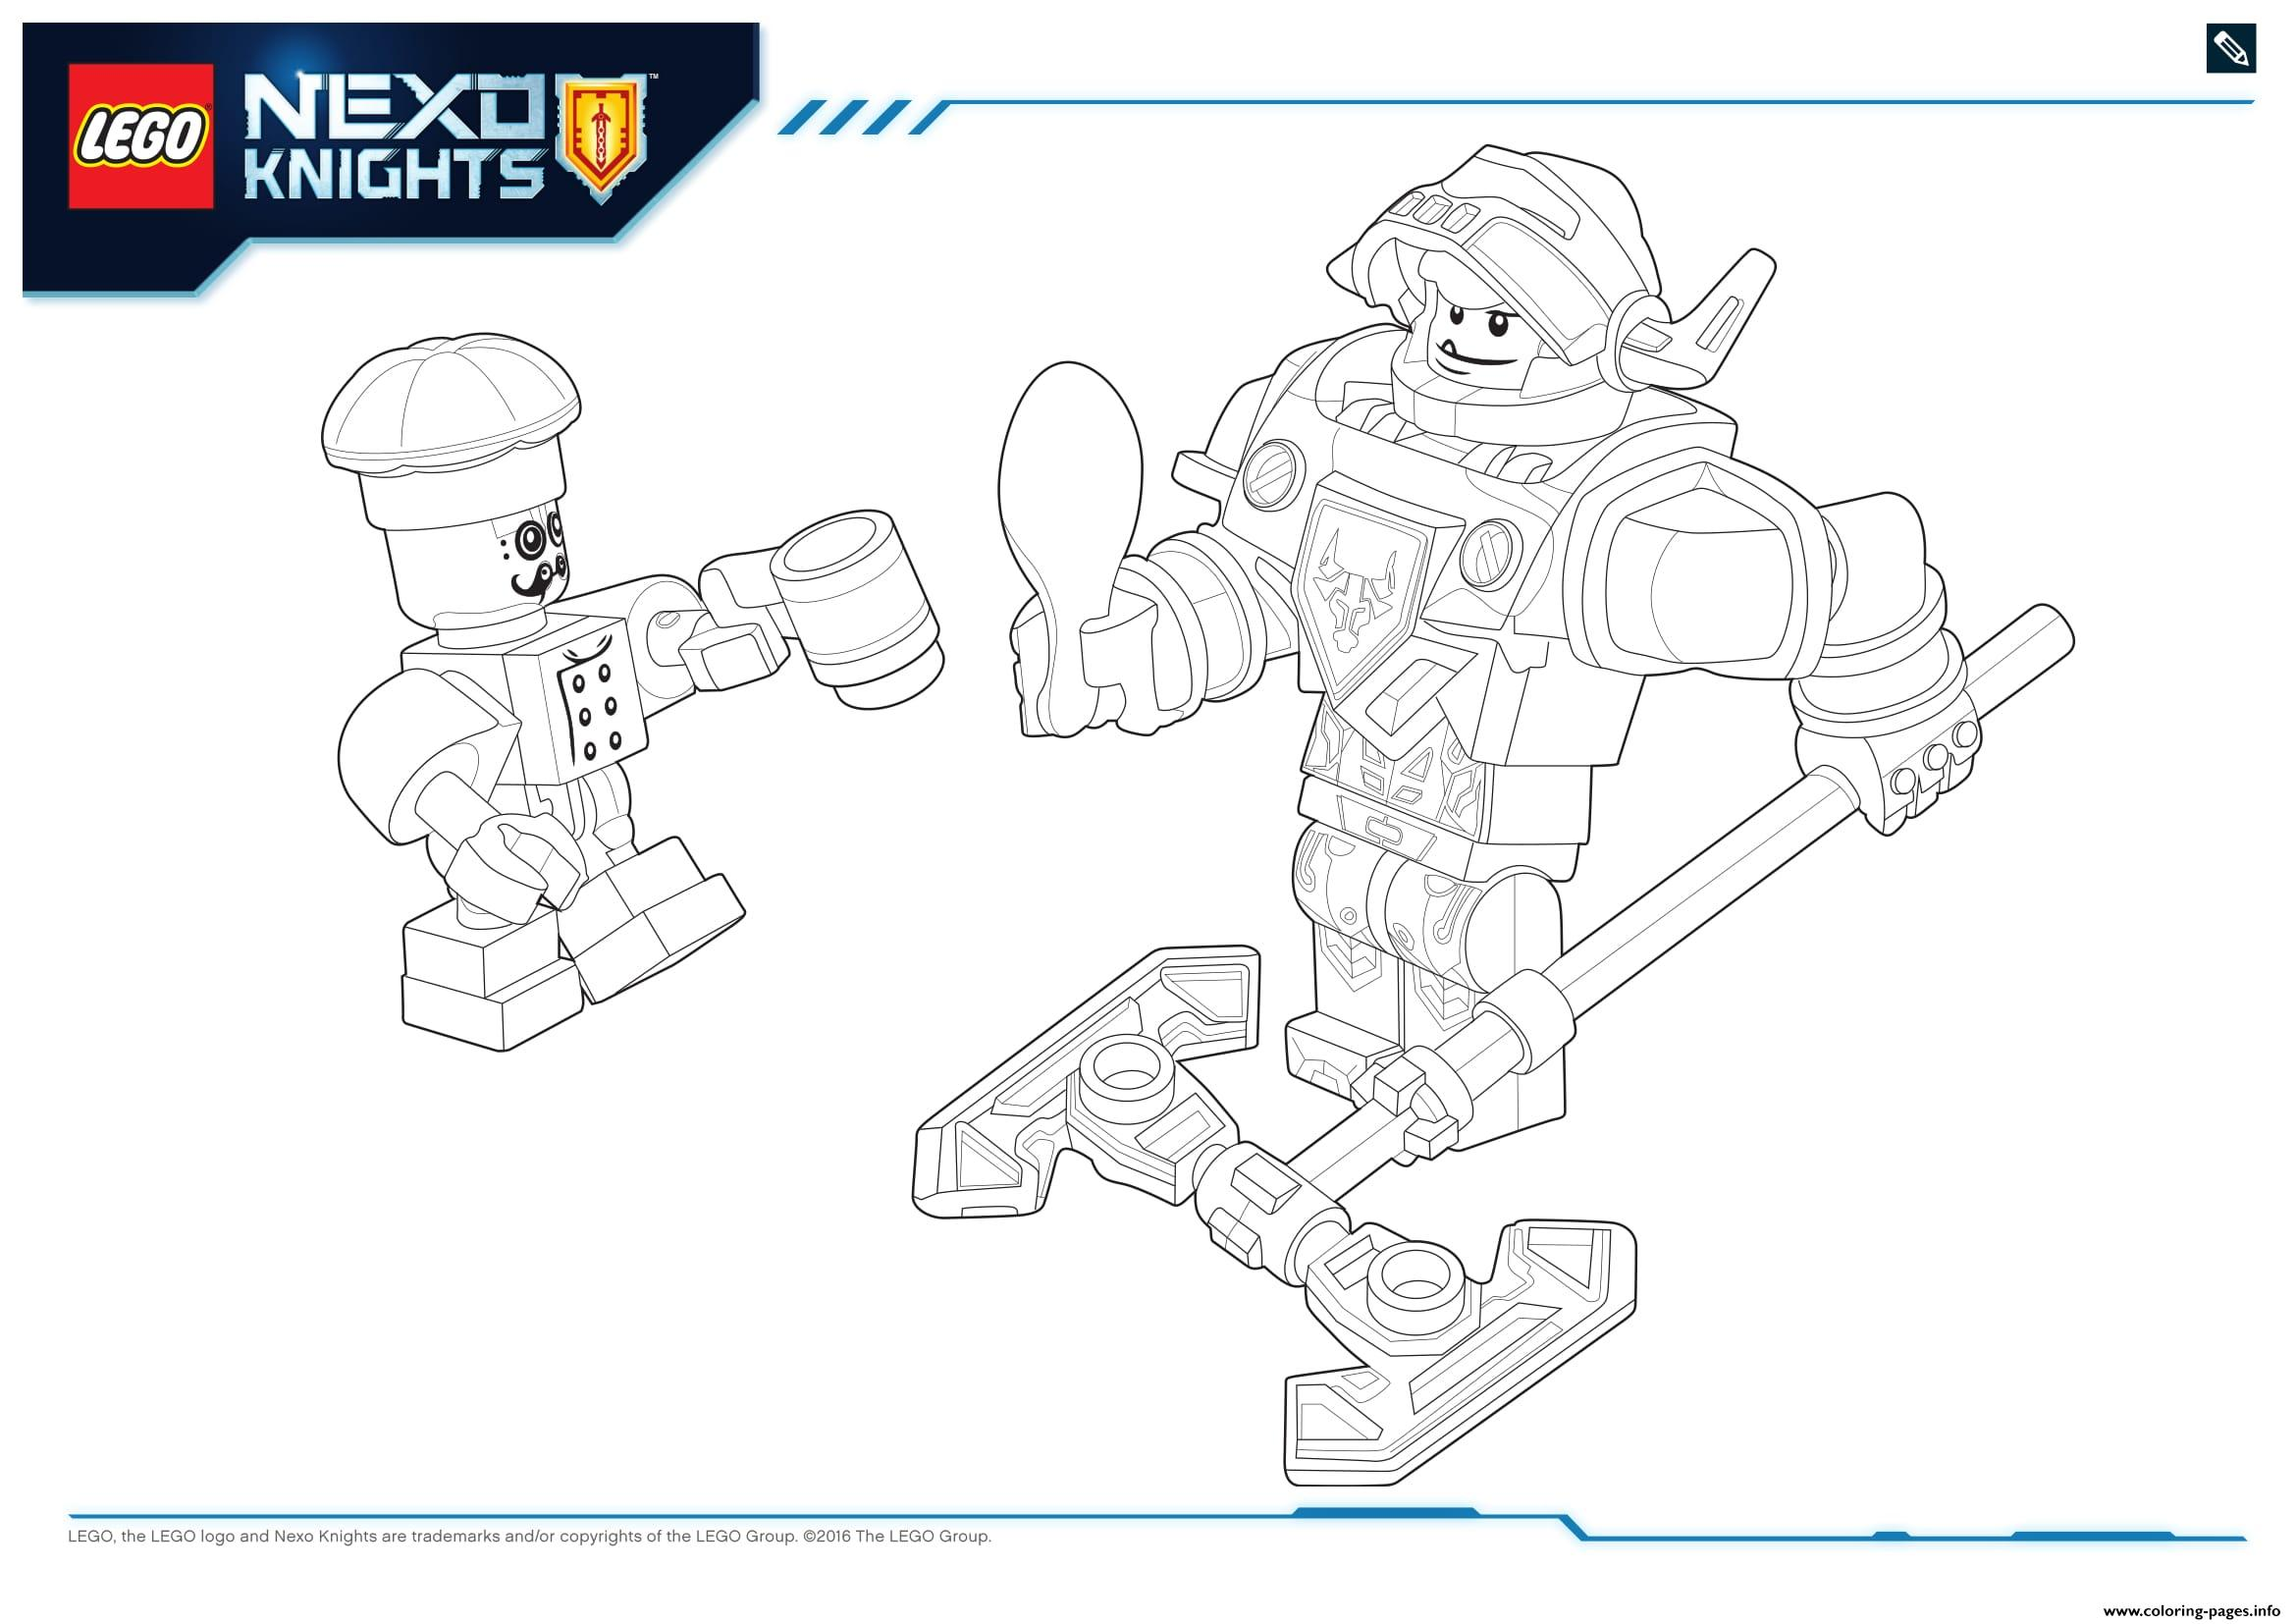 lego nexo knights products 8 coloring pages